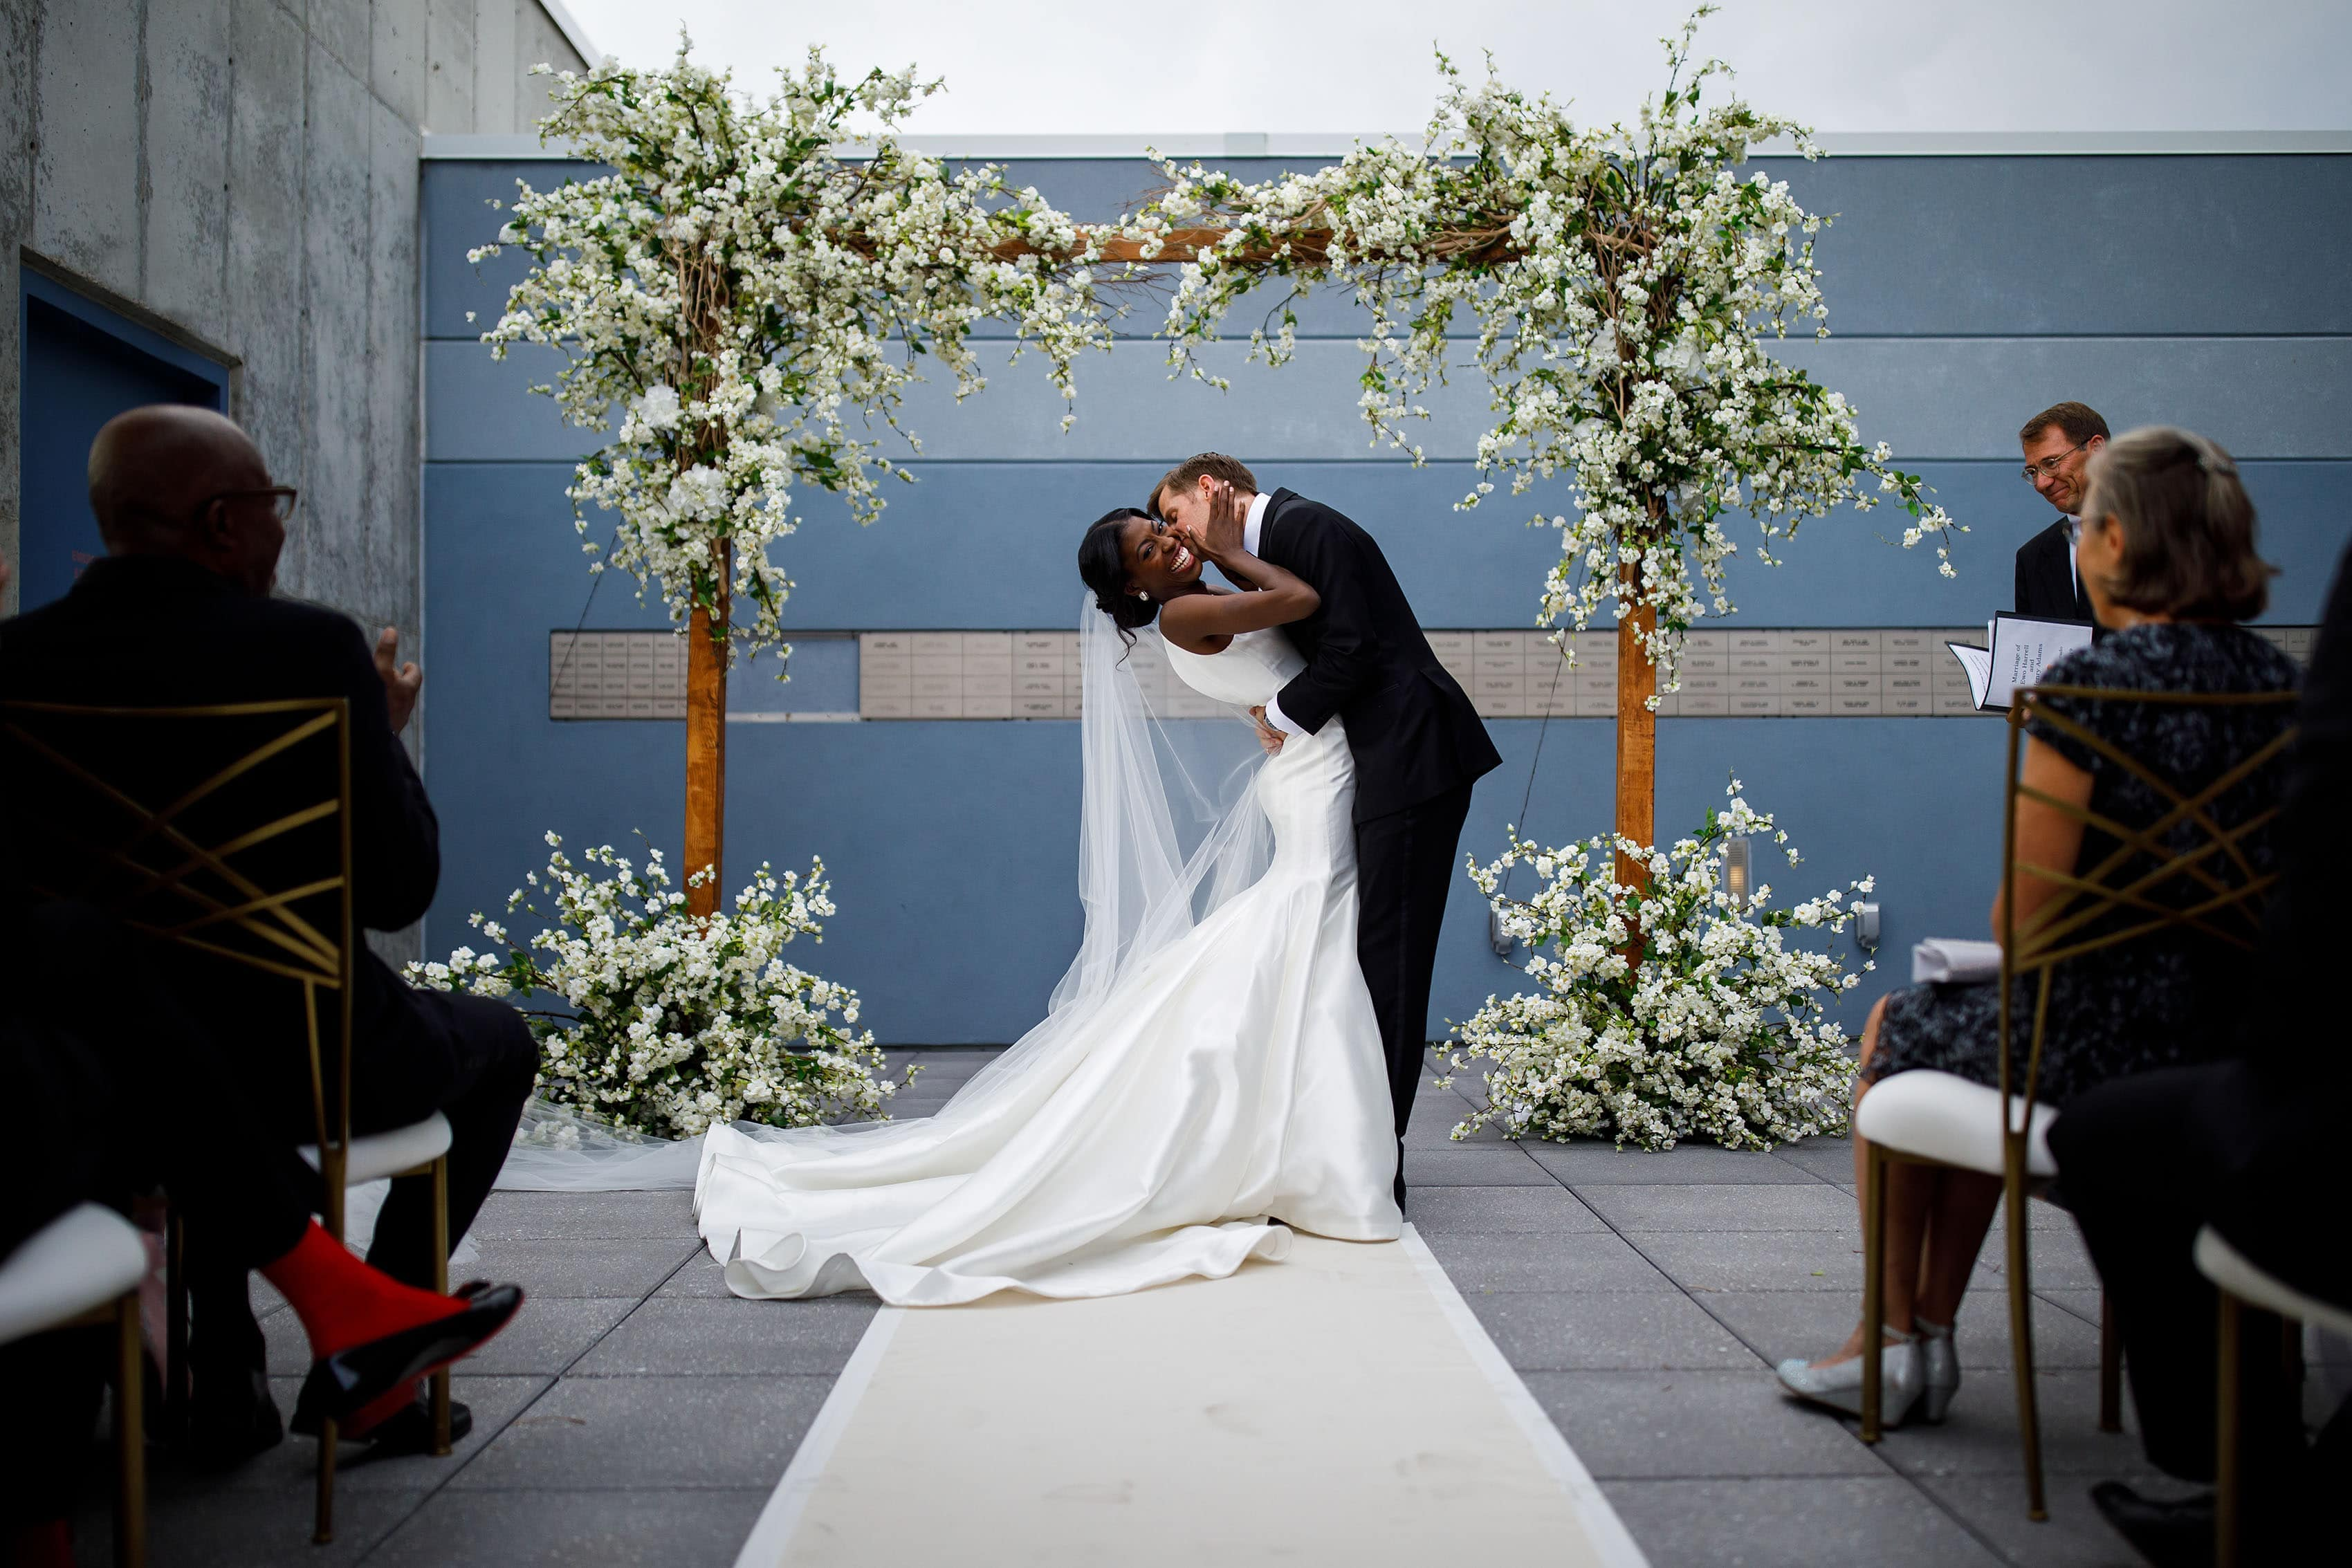 The newlyweds share a kiss during their rooftop ceremony at the Denver Museum of Nature and Science